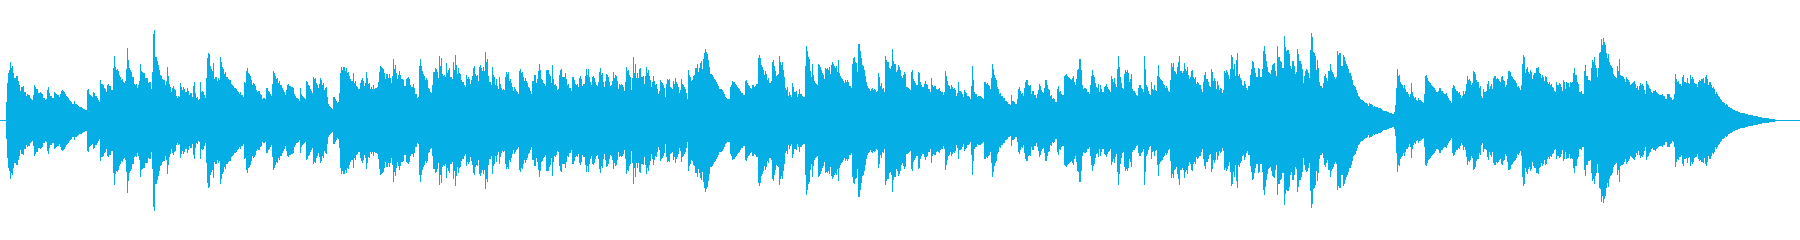 Wagner's Nuremberg オ ル music box style's reproduced waveform